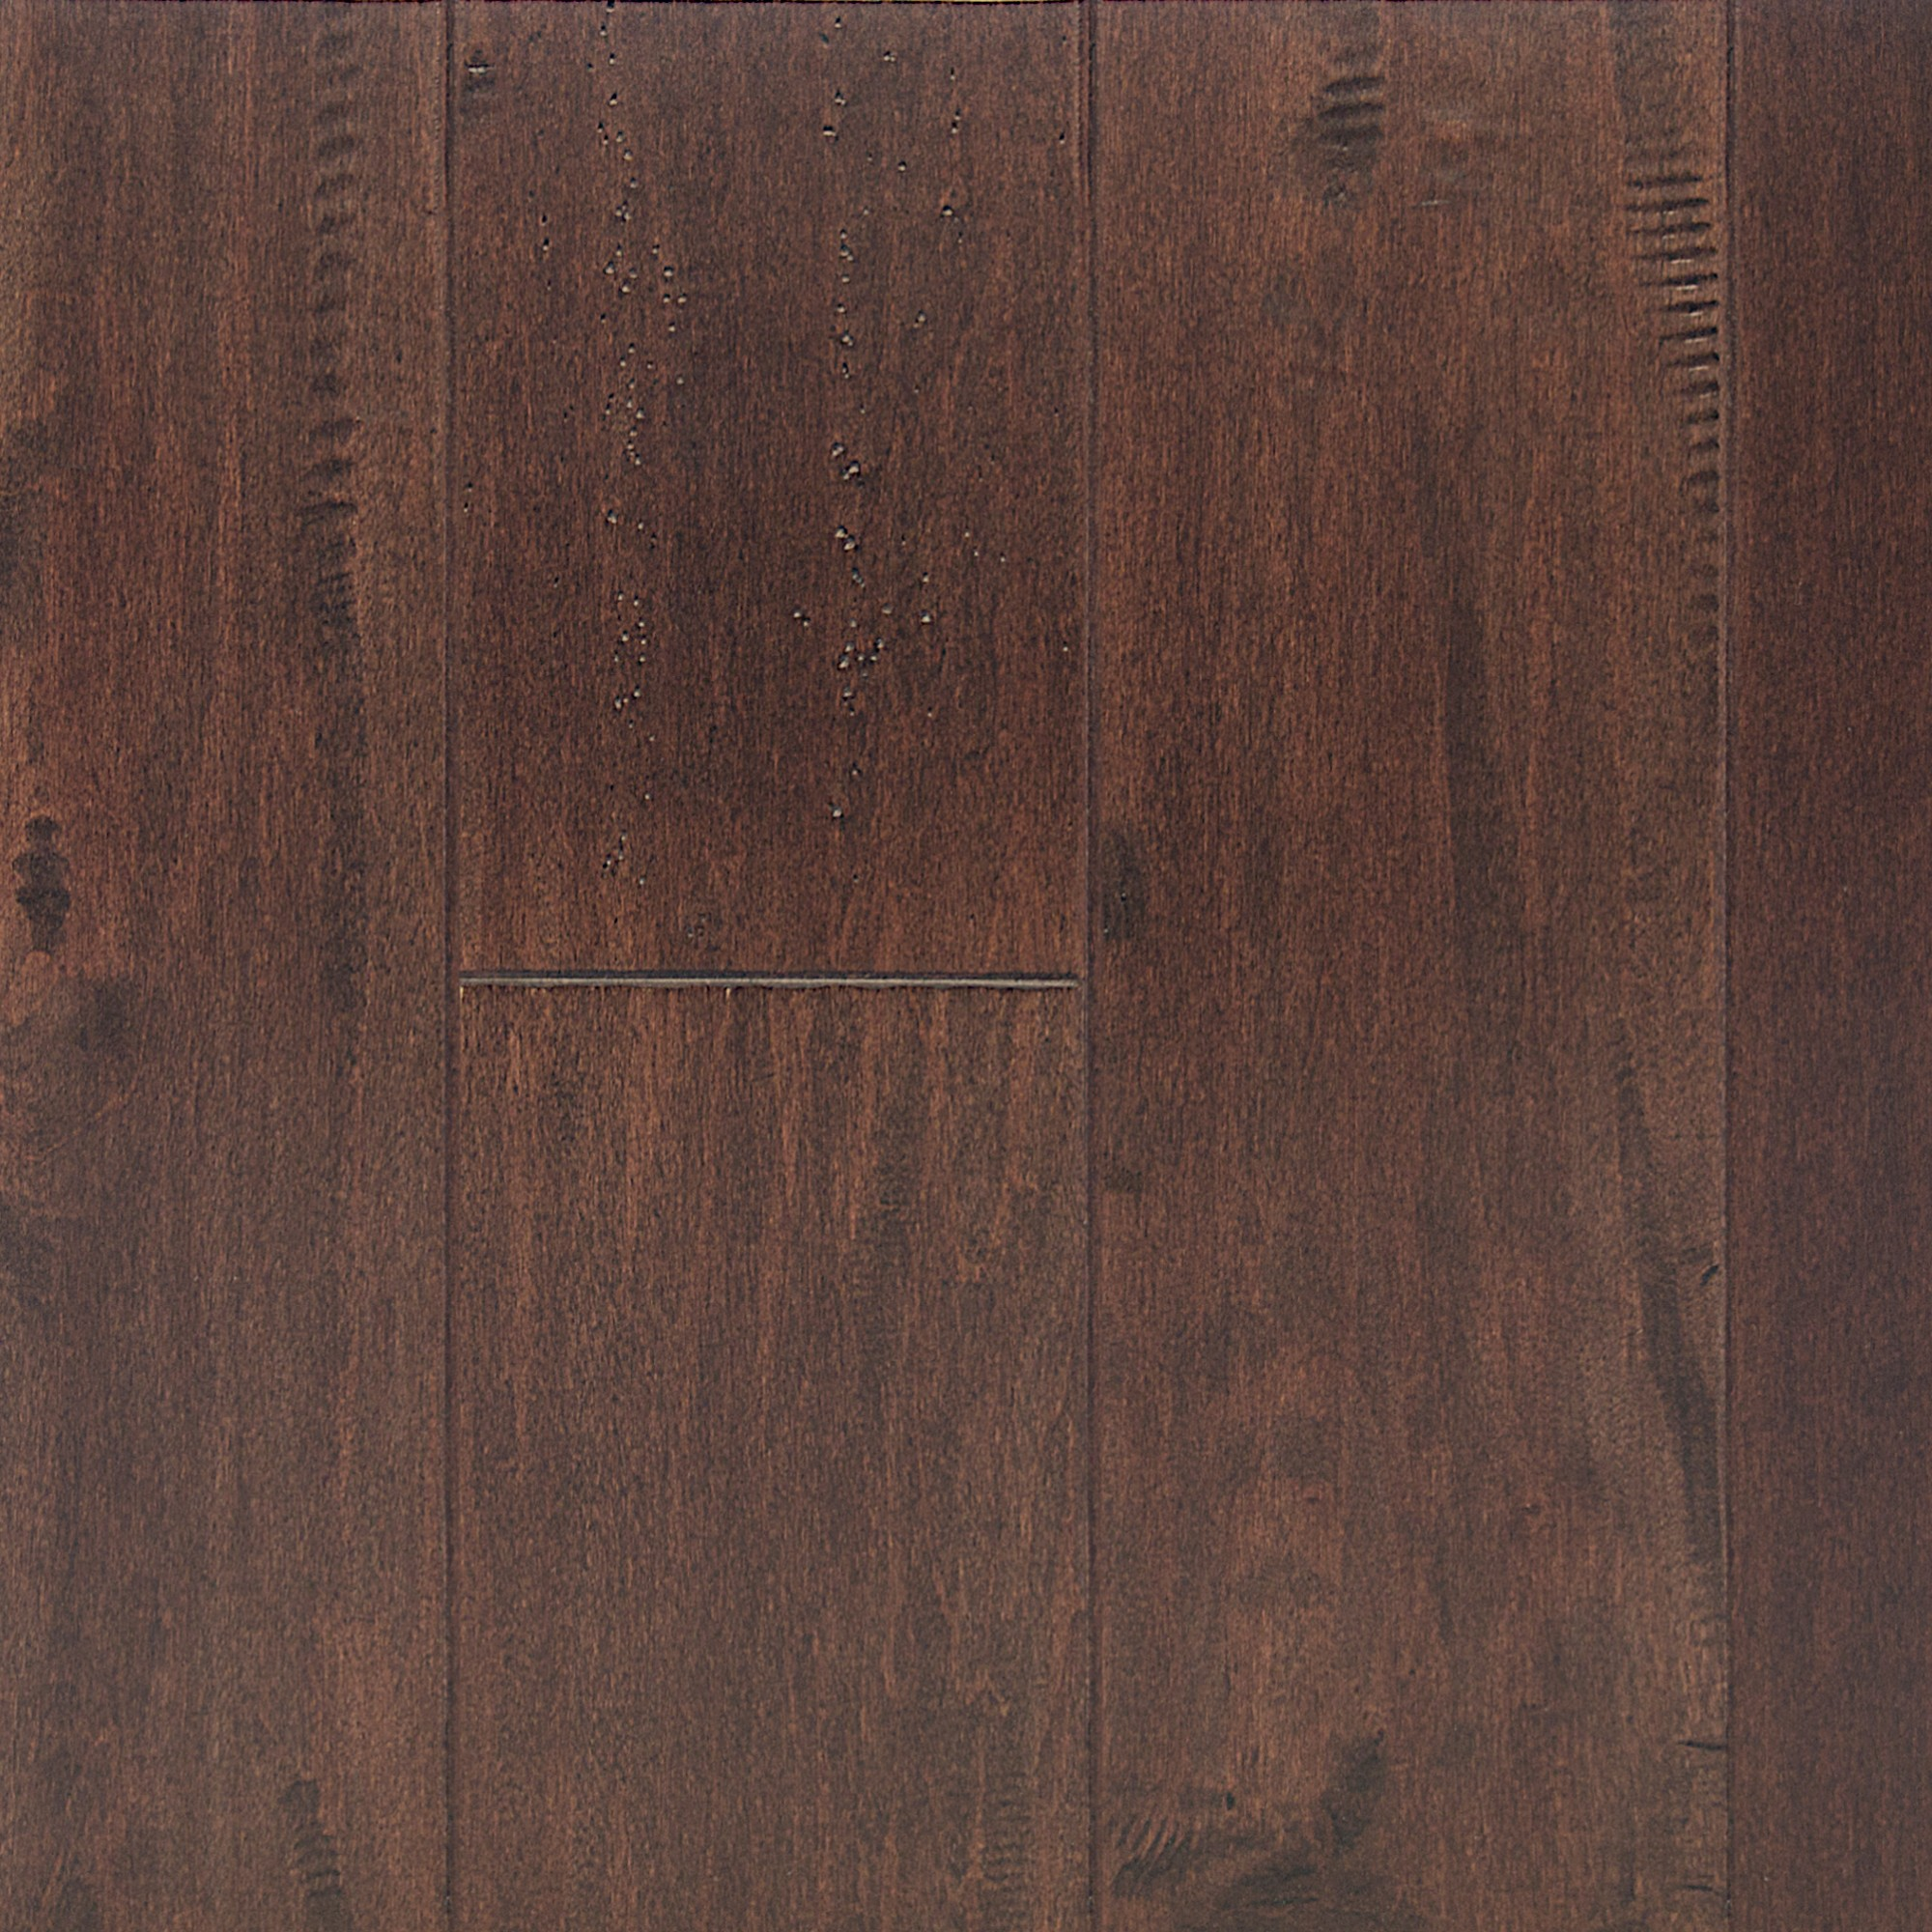 hardwood tuscan for hand toscana floor johnson flooring pin scraped color installed engineered room series living